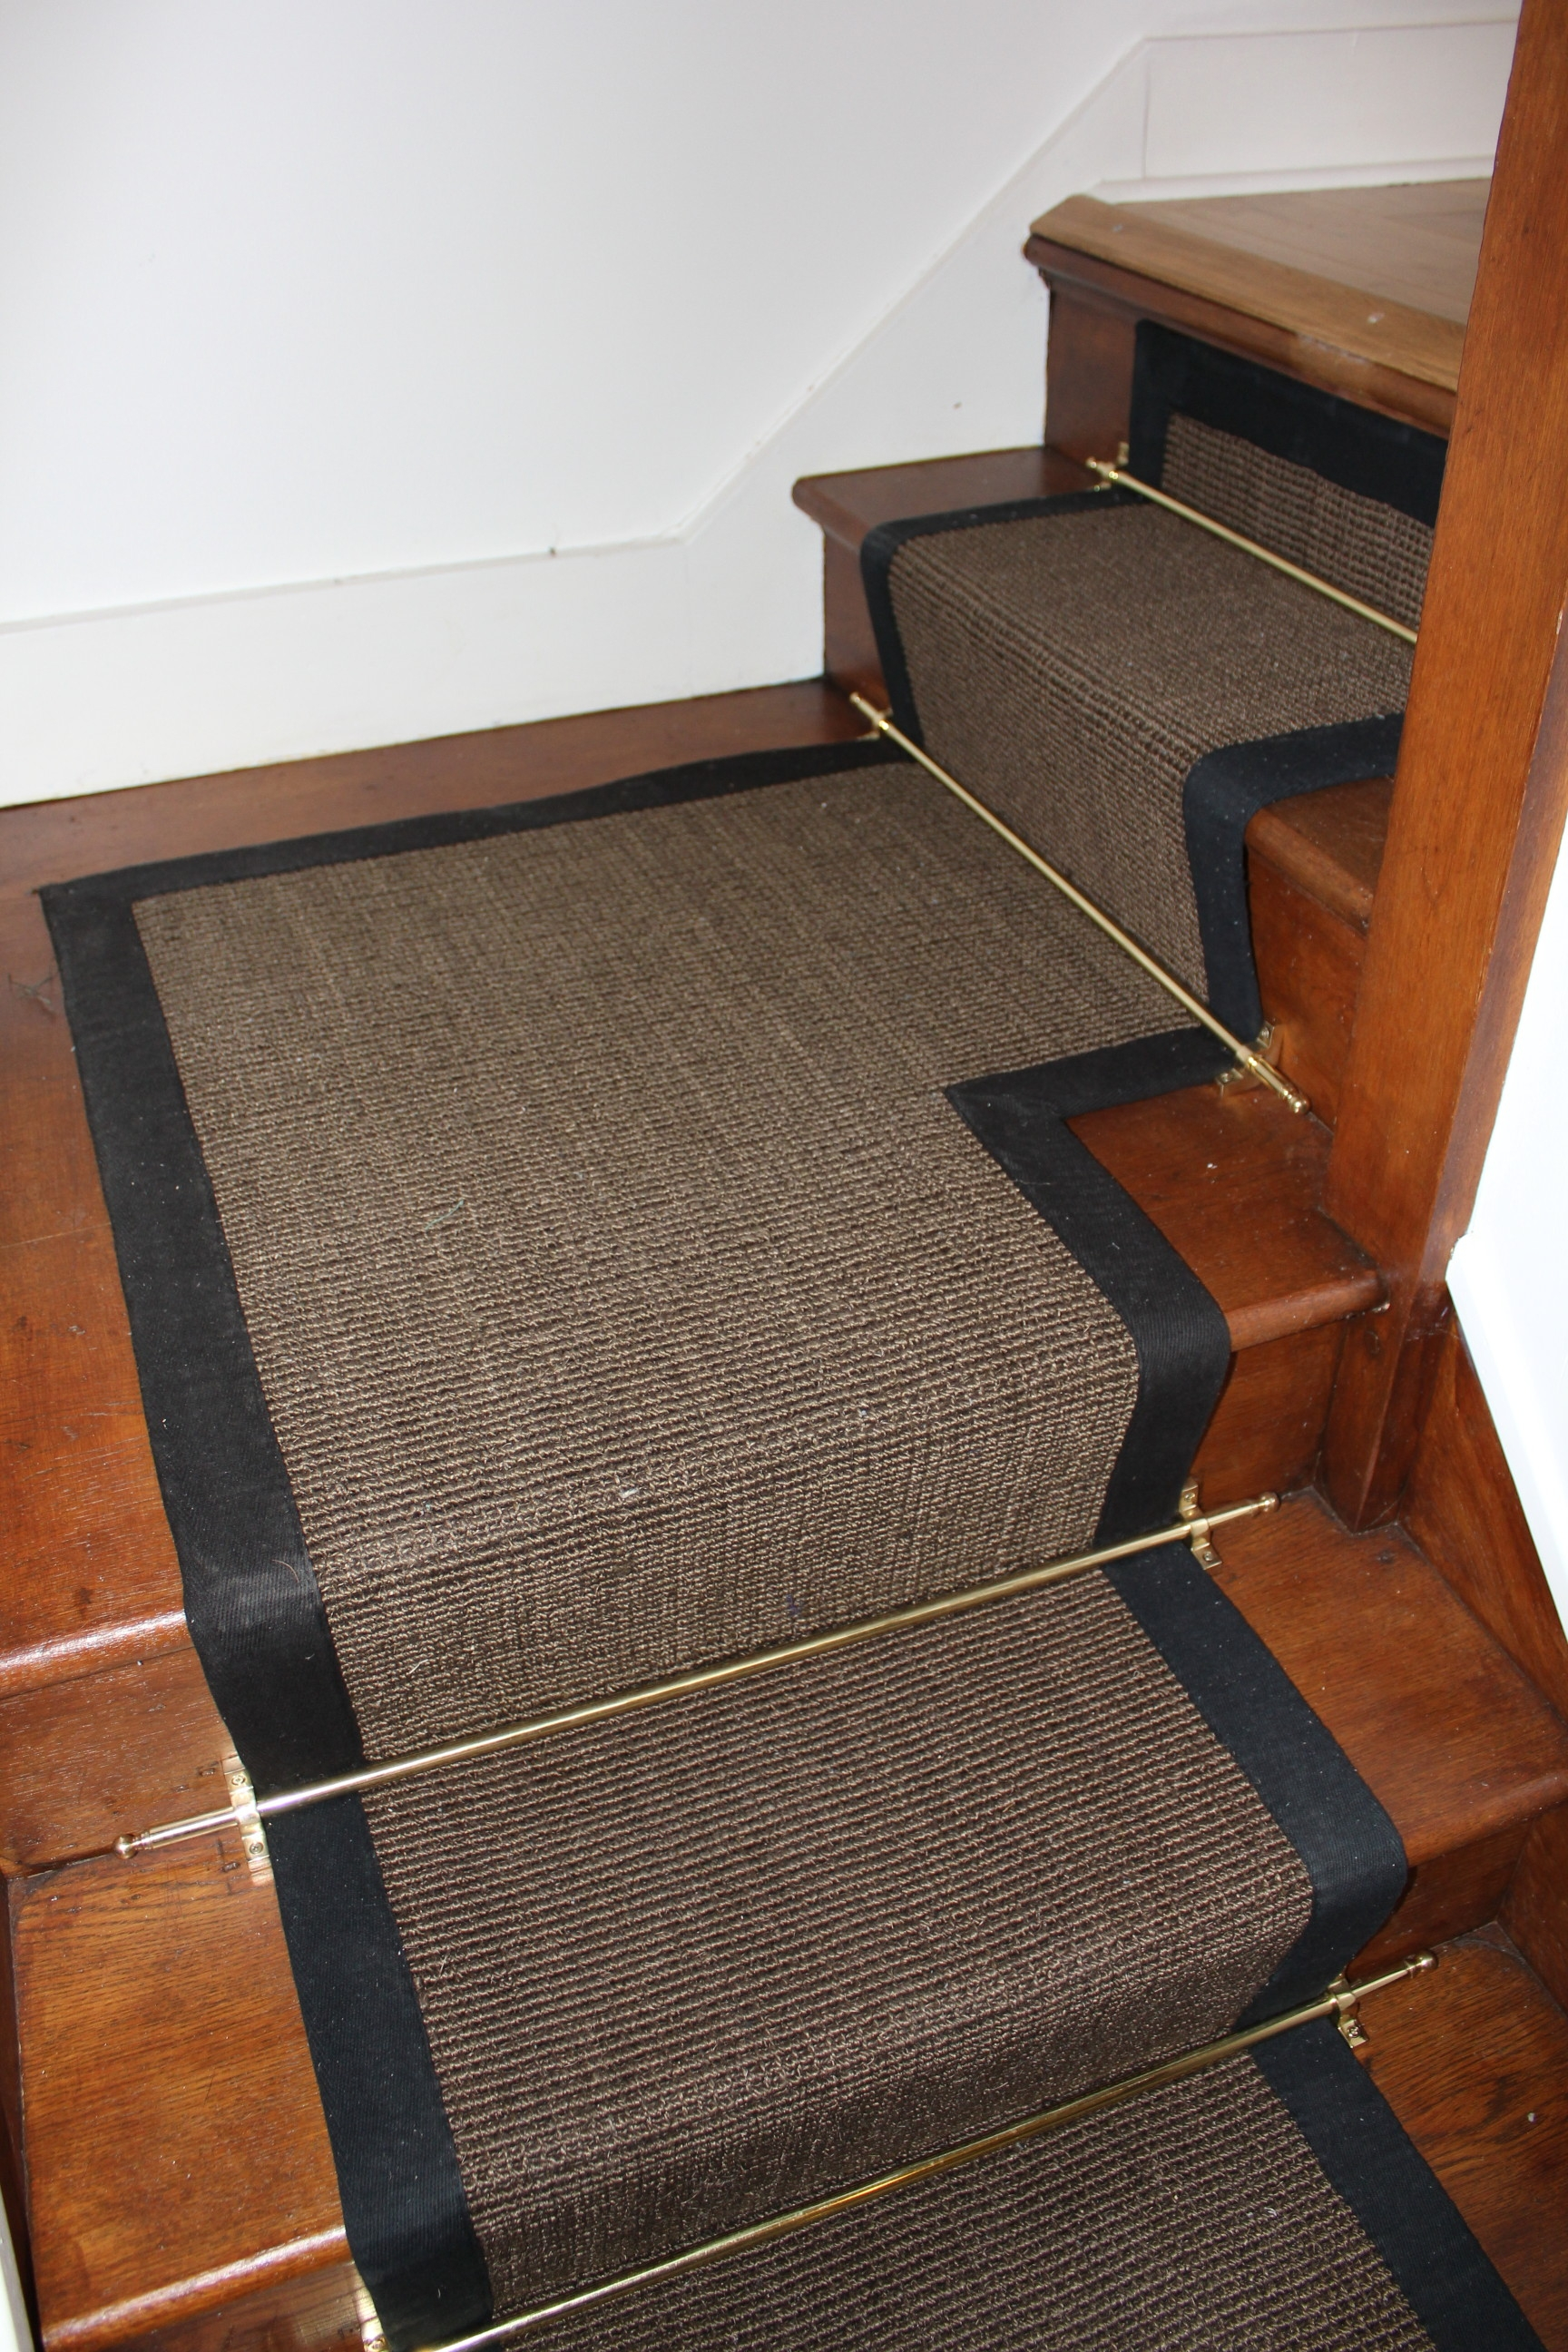 Runners For Stairs Gallery Runners Gallery Roger Oates Floors And With Regard To Stair Tread Rug Holders (View 3 of 20)